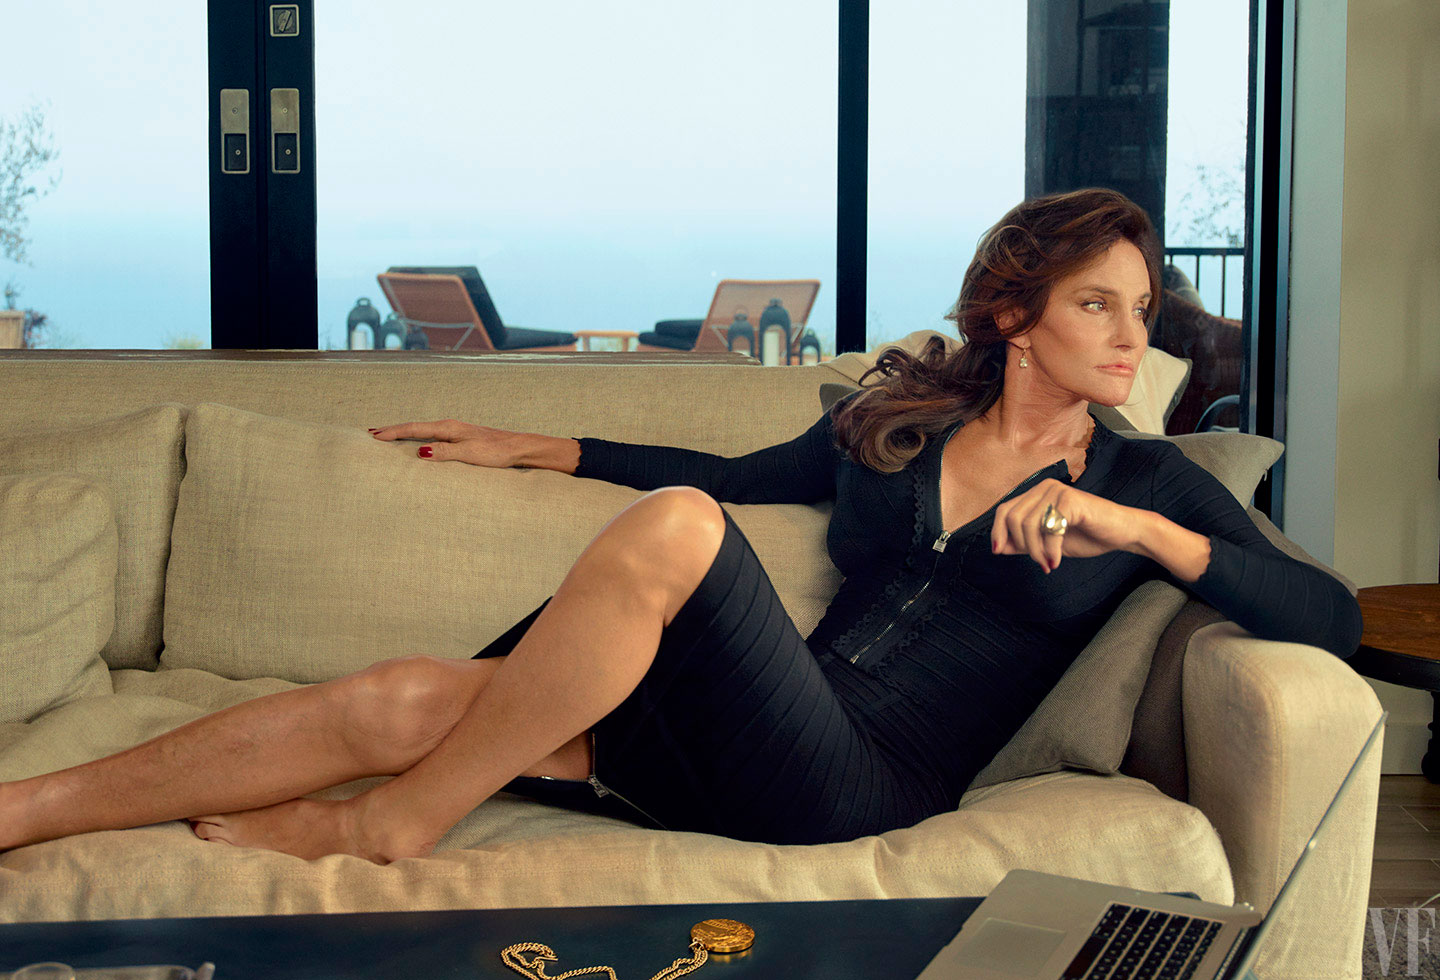 nrm_1433253349-caitlyn-jenner-vanity-fair-pictures-4